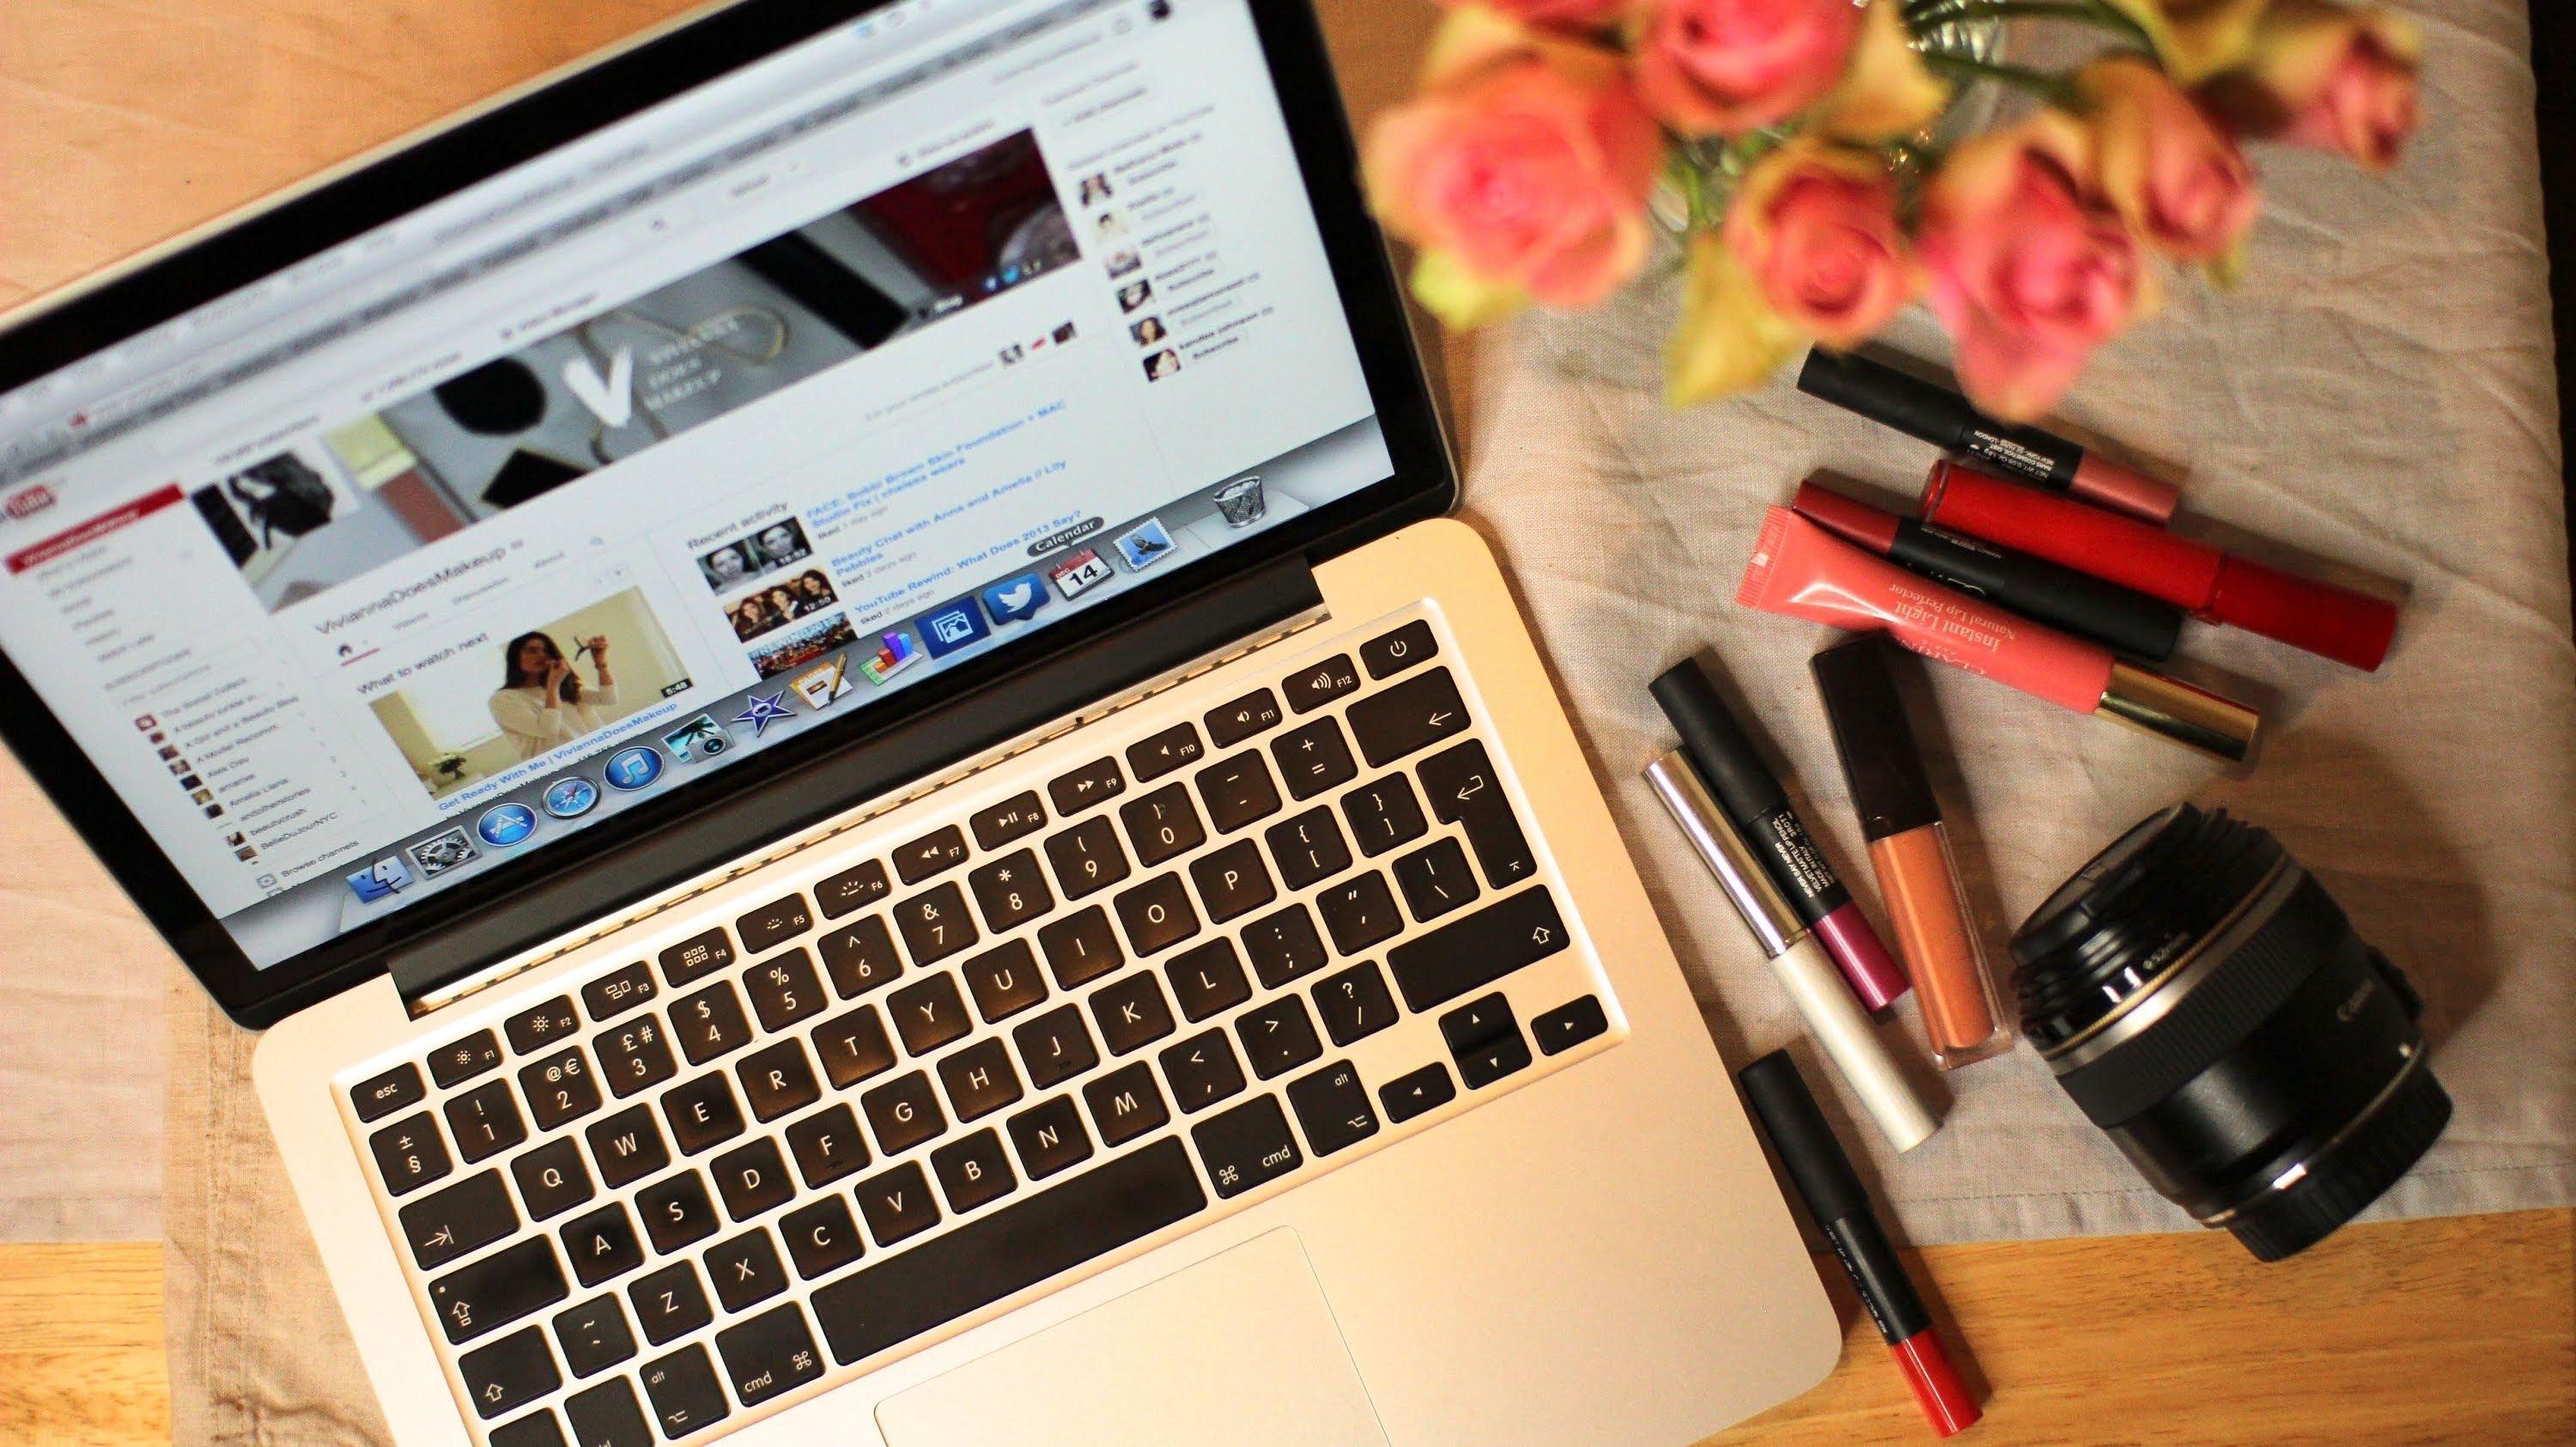 Watch our 'How to Start a Blog' Video on Lily's Channel